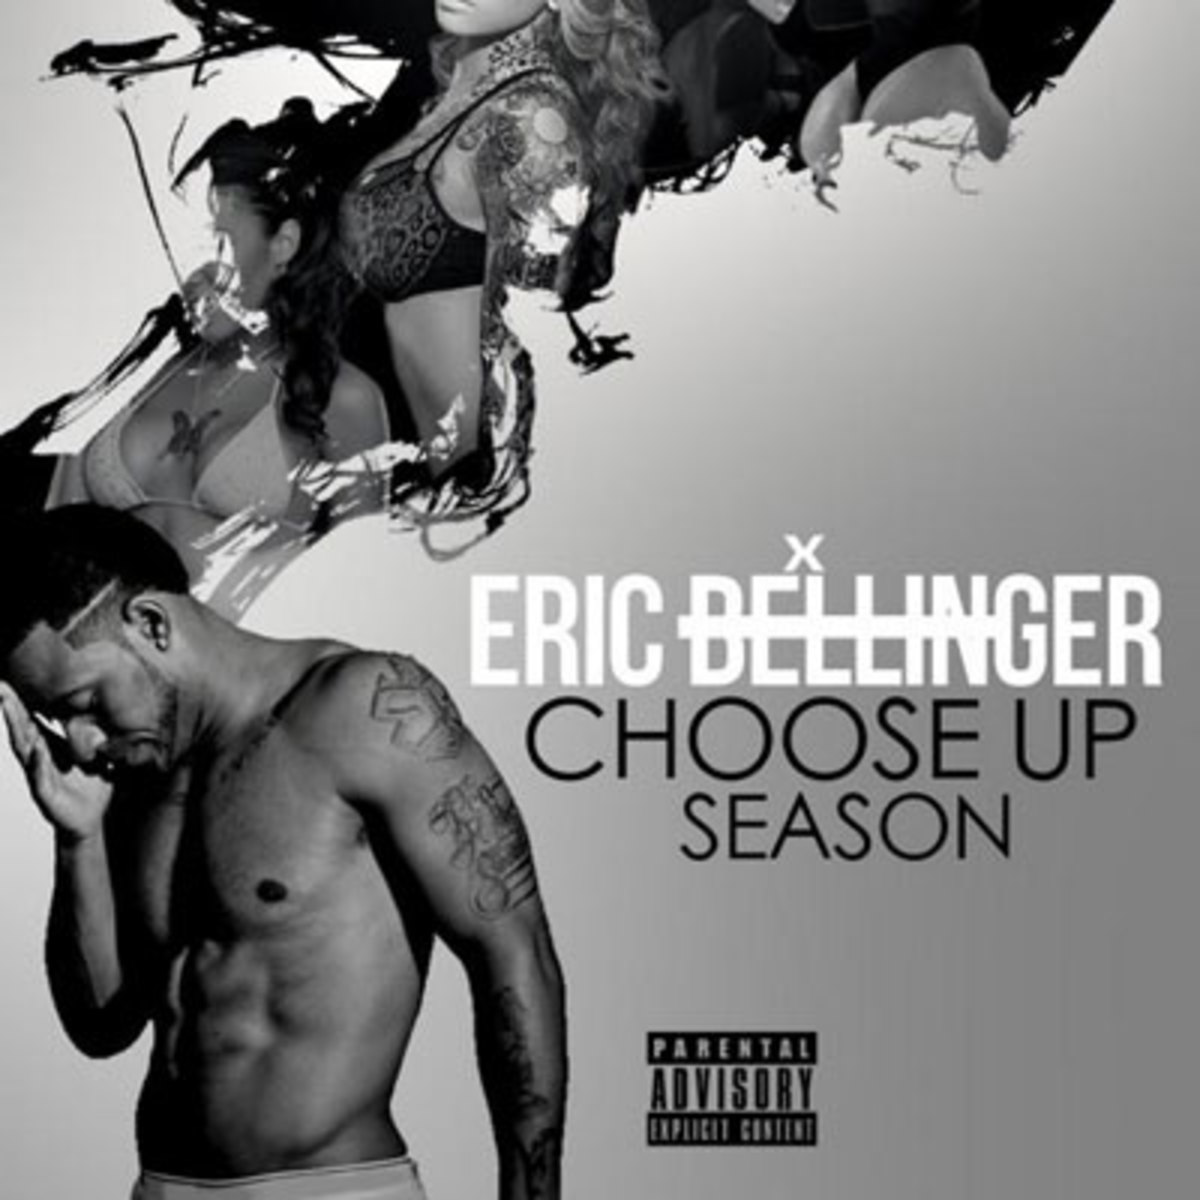 ericbellinger-chooseup.jpg